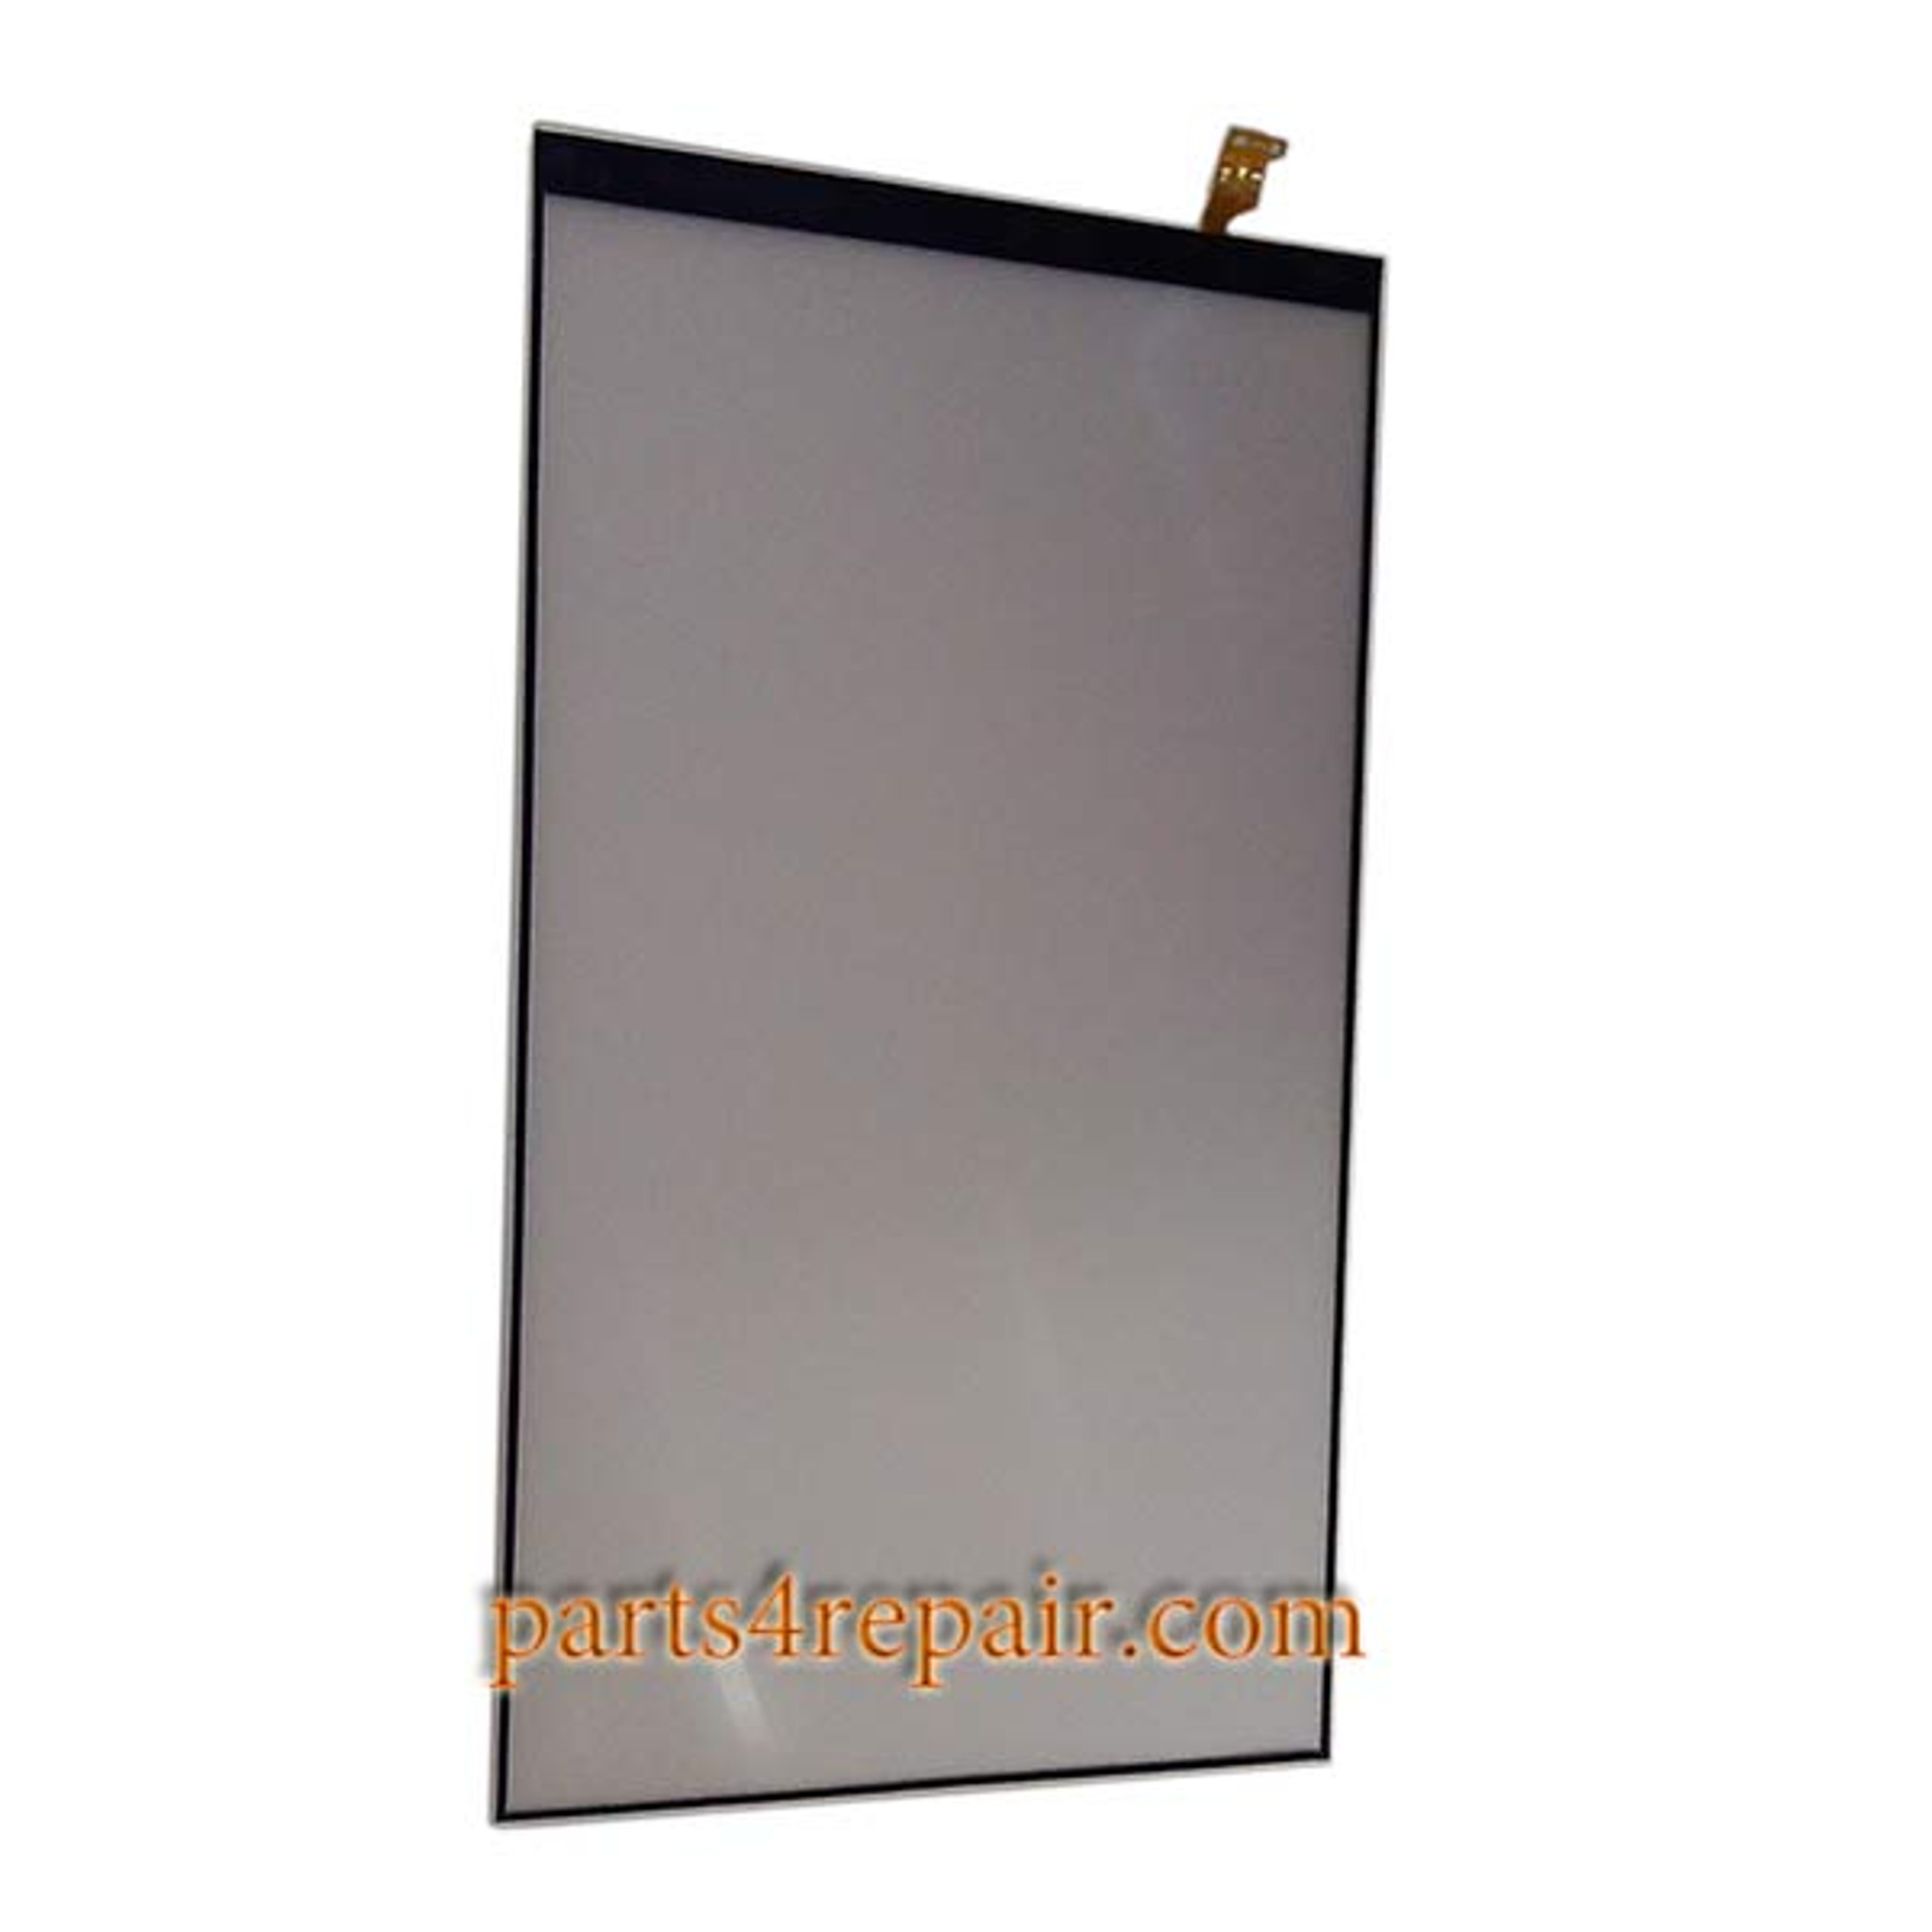 LCD Backlight for Huawei Ascend Mate 7